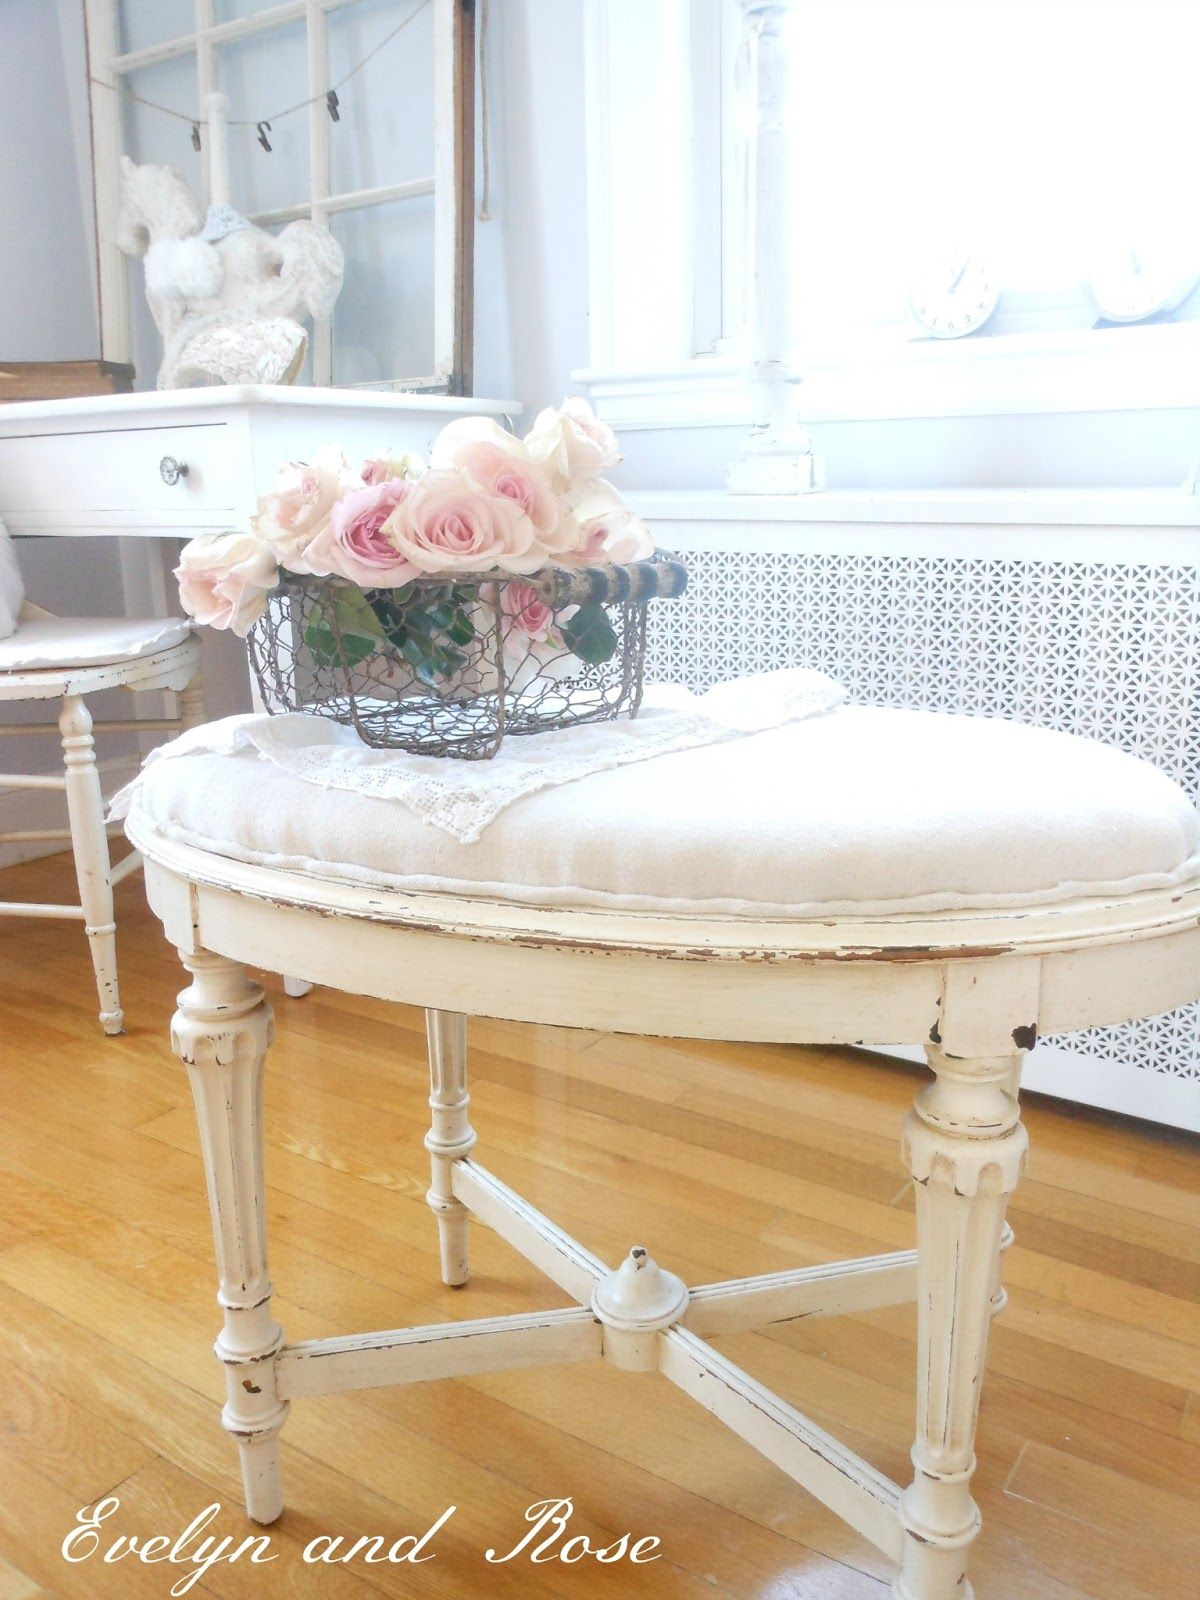 DIY: How To Repurpose A Table Into A Bench   This Tutorial Shows How To